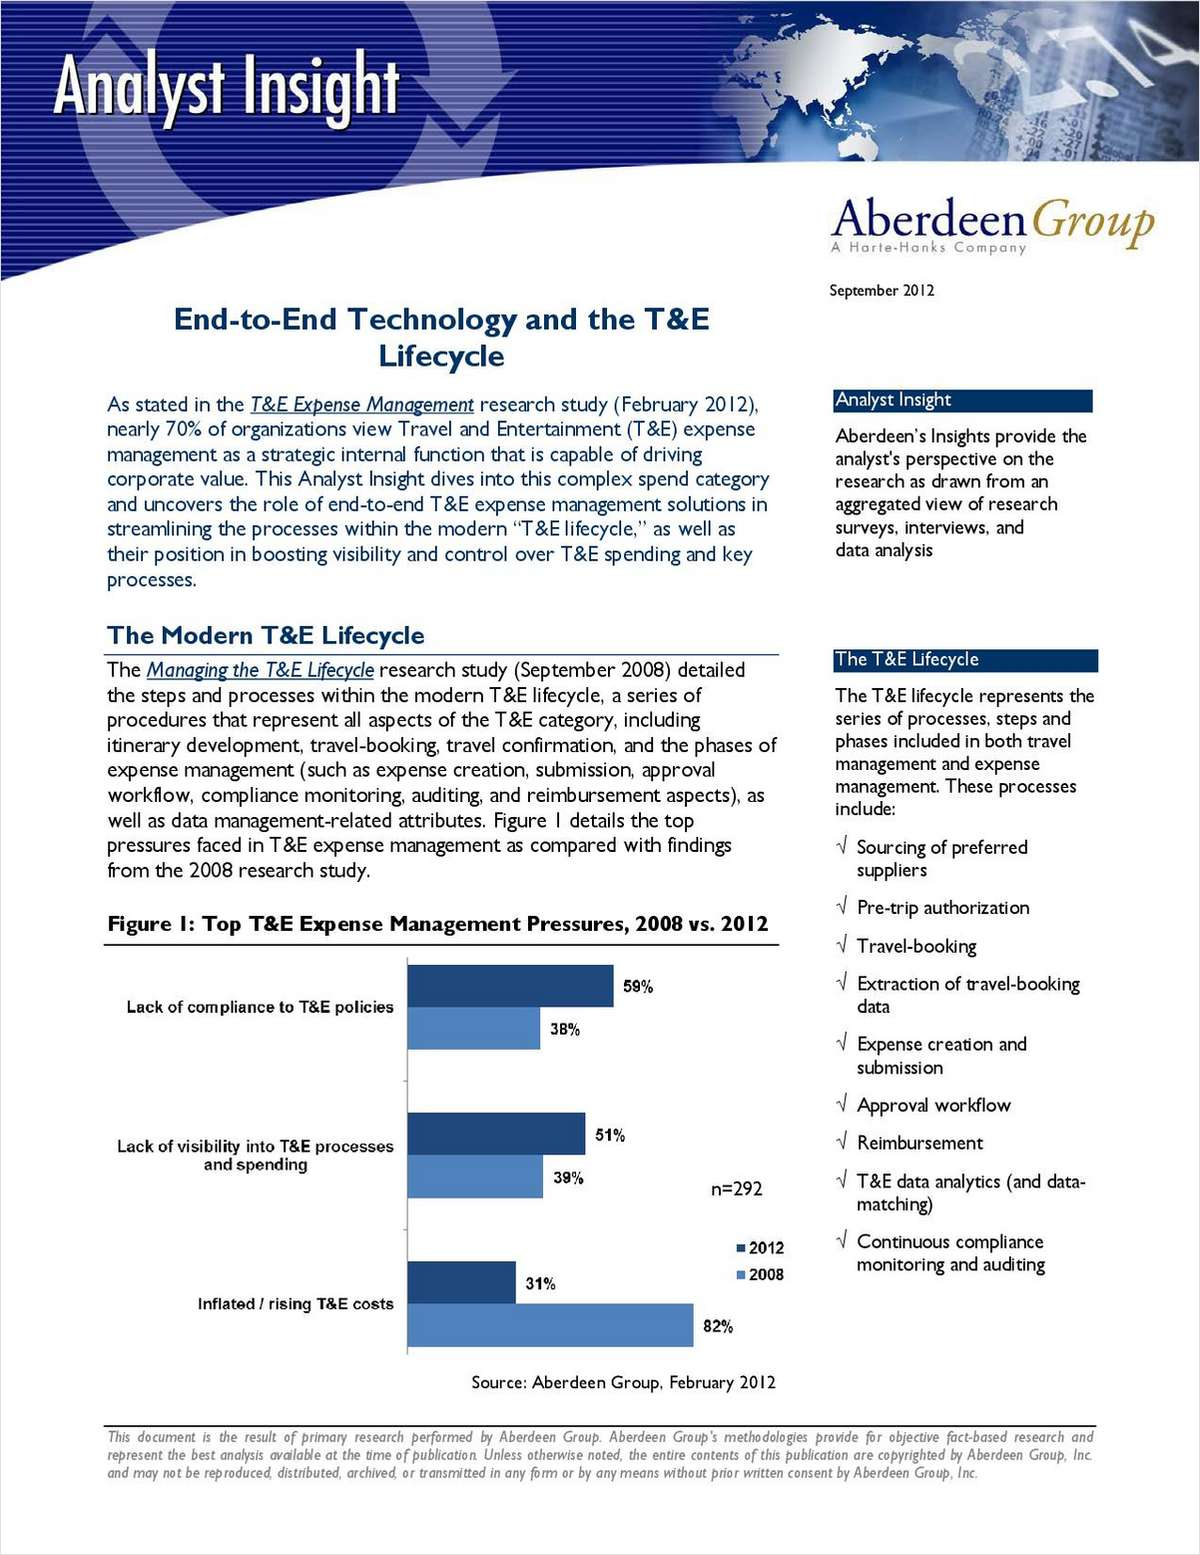 End-to-End Technology and the T&E Lifecycle